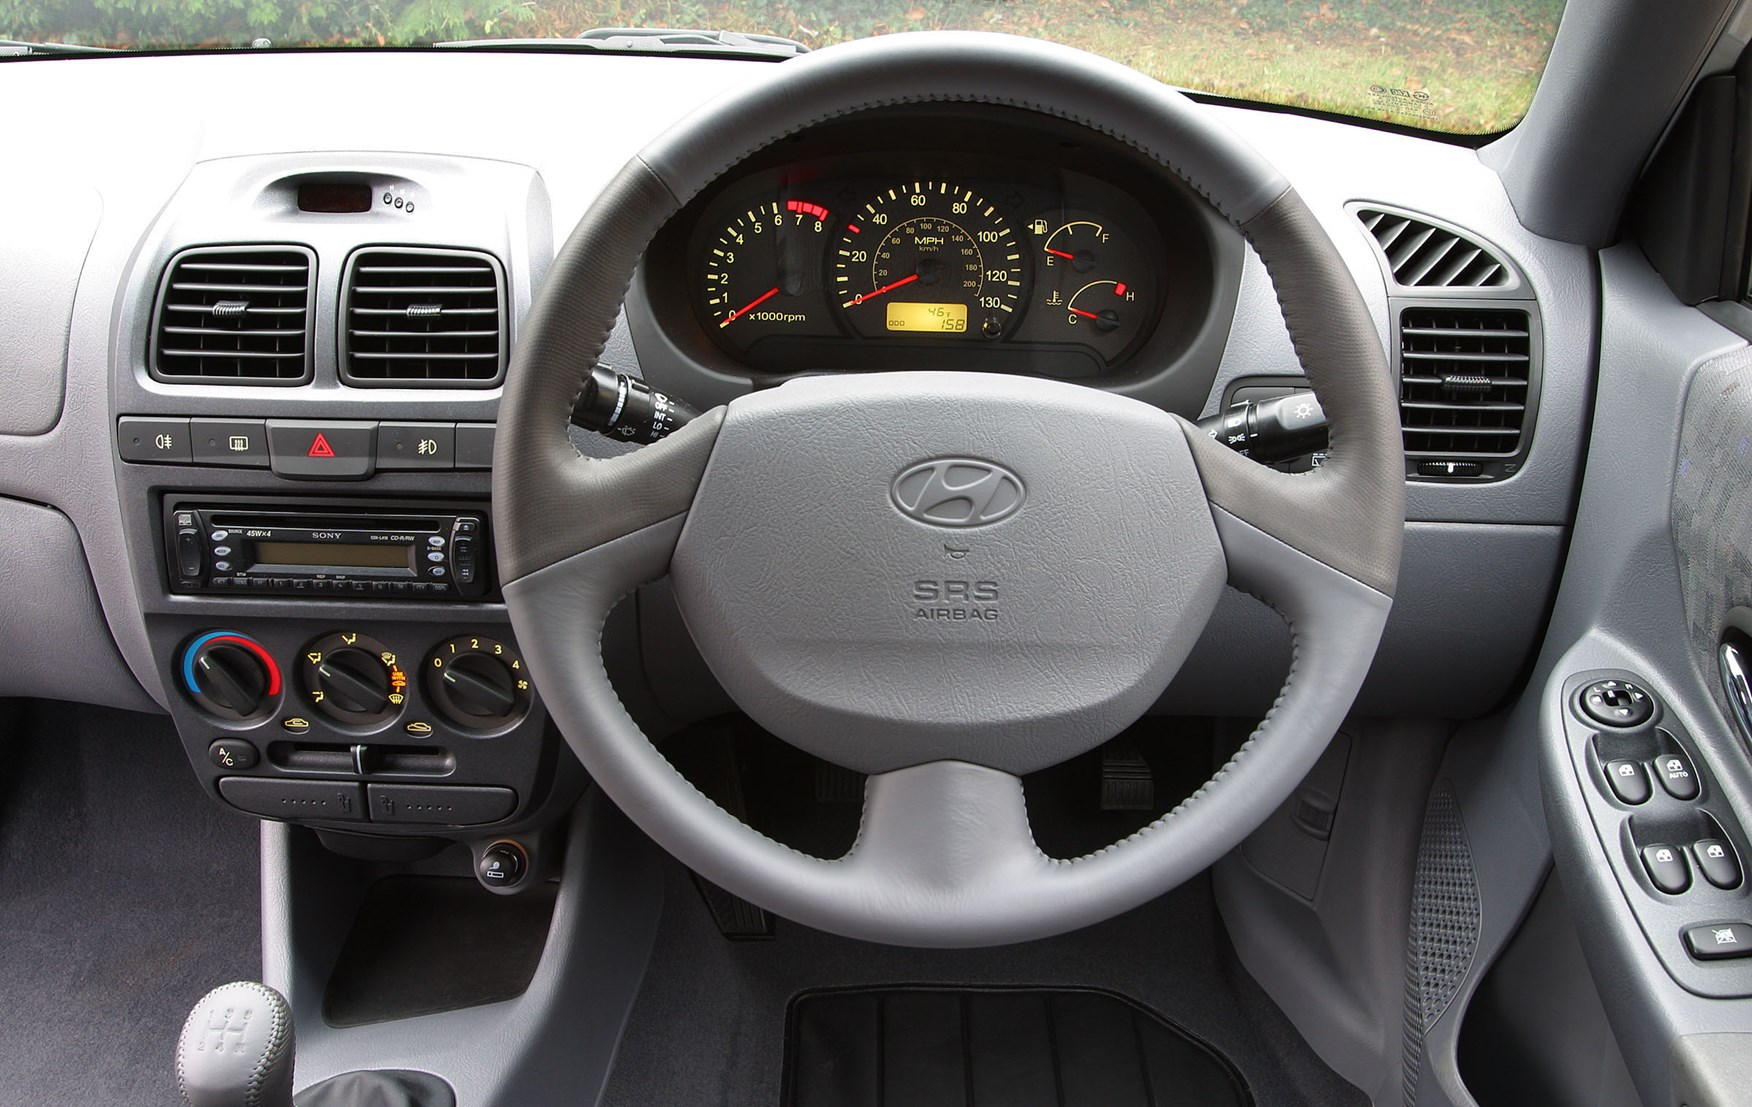 Hyundai Accent Hatchback >> Hyundai Accent Hatchback (2000 - 2005) Features, Equipment ...